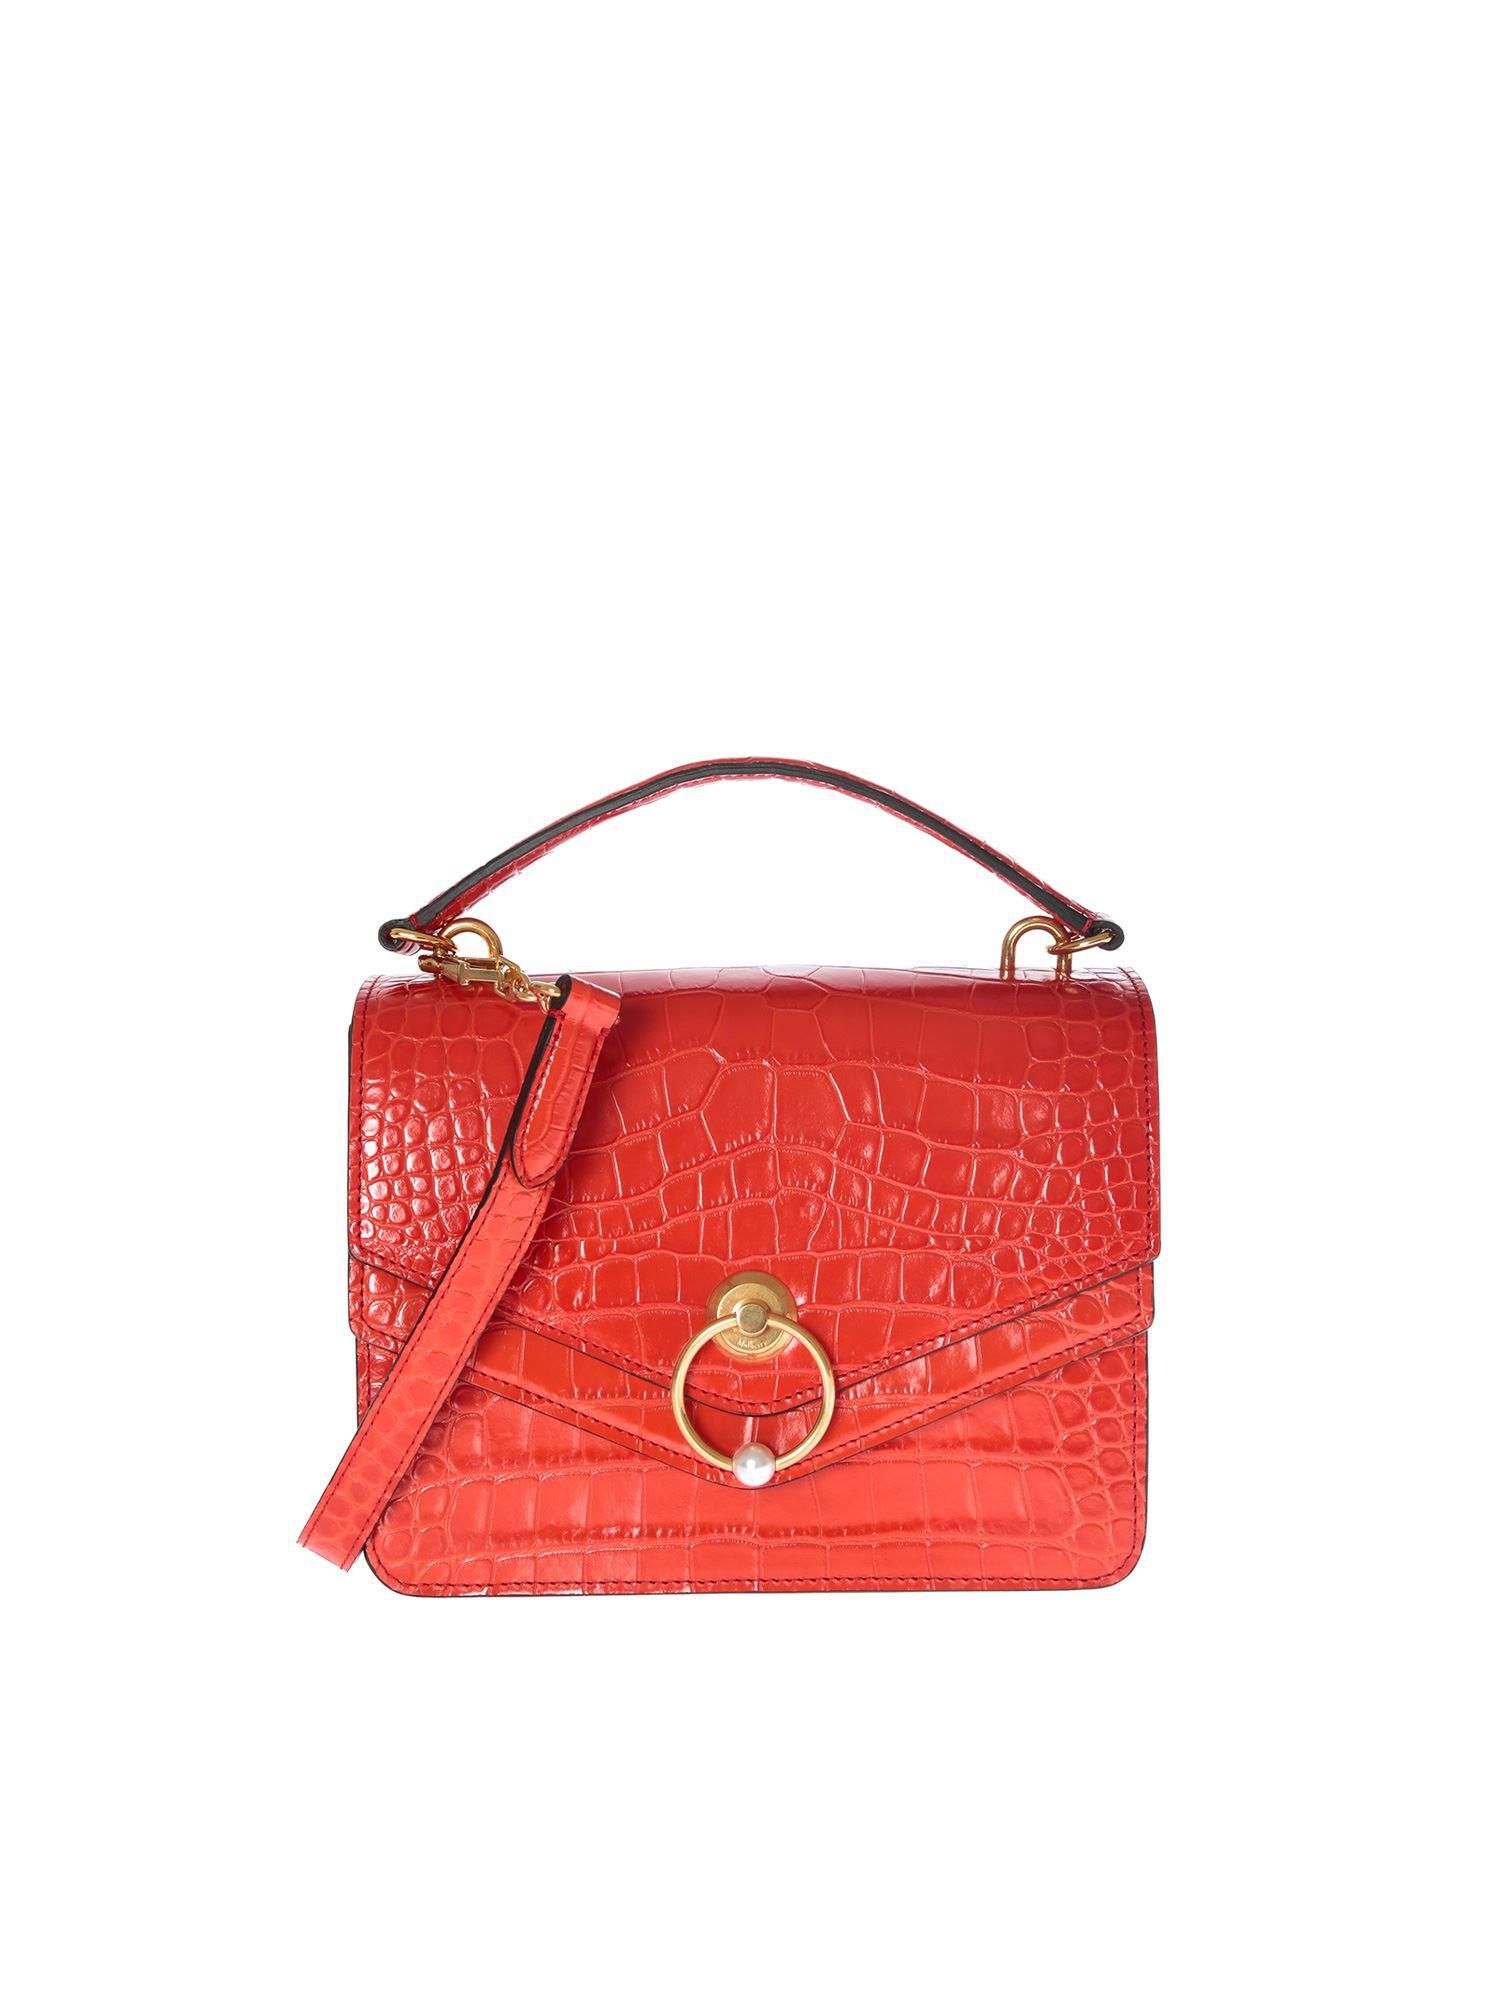 4b5eb4144c Mulberry Harlow Satchel Red Bag in Red - Lyst